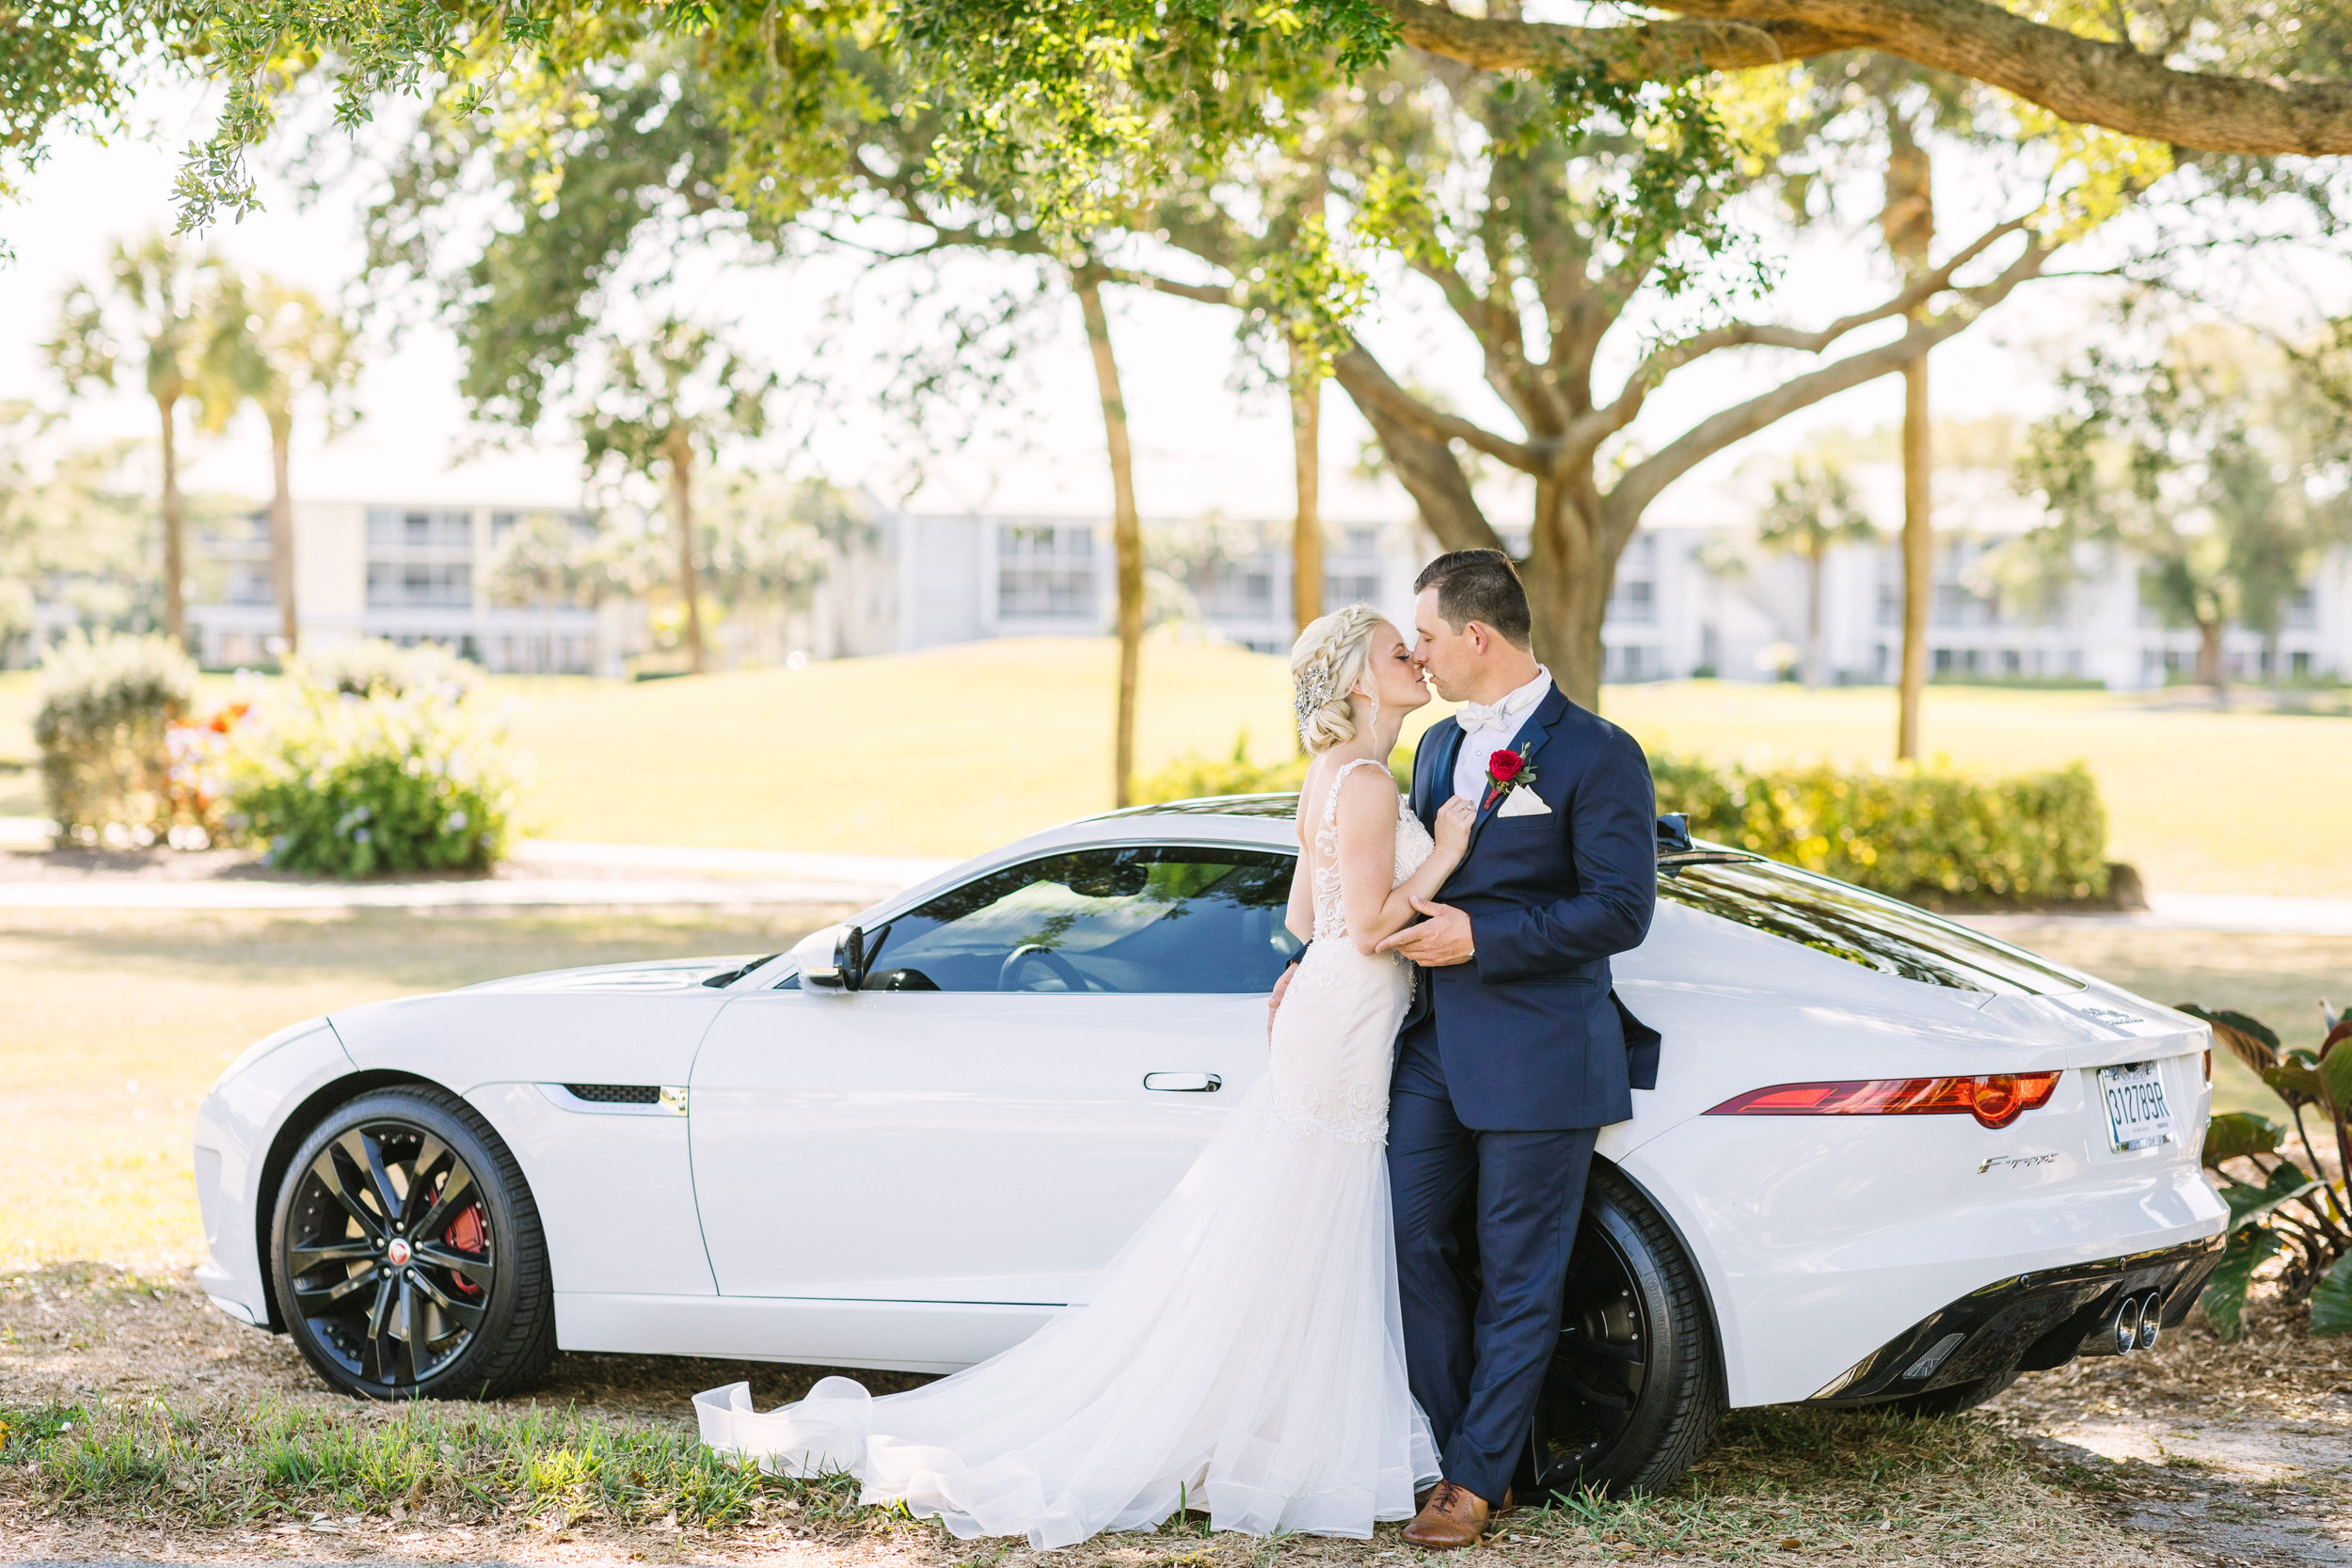 bmw styled bride and groom wedding photos